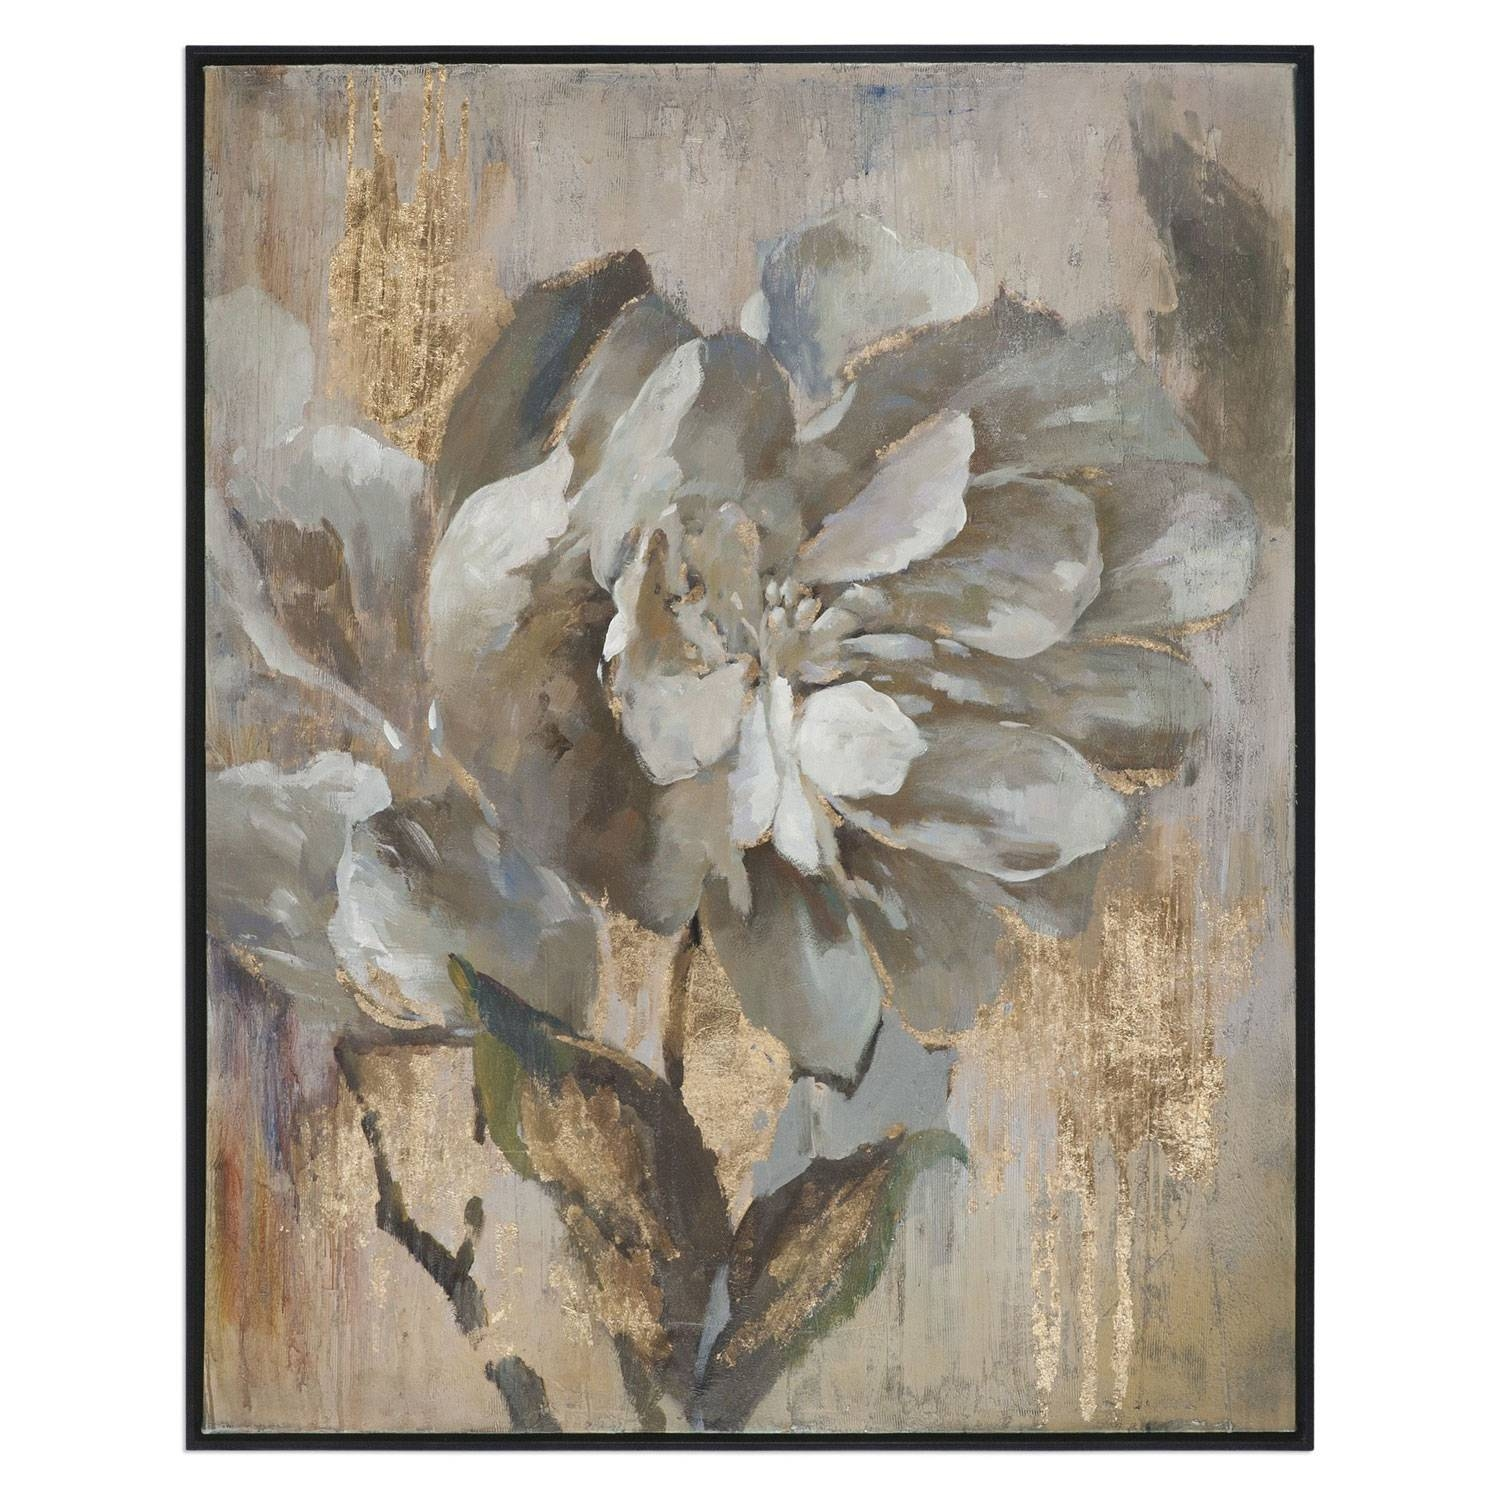 Dazzlinggrace Feyock: 41 X 51 Inch Wall Art Uttermost Wall Art Regarding Most Up To Date Uttermost Metal Wall Art (View 2 of 20)